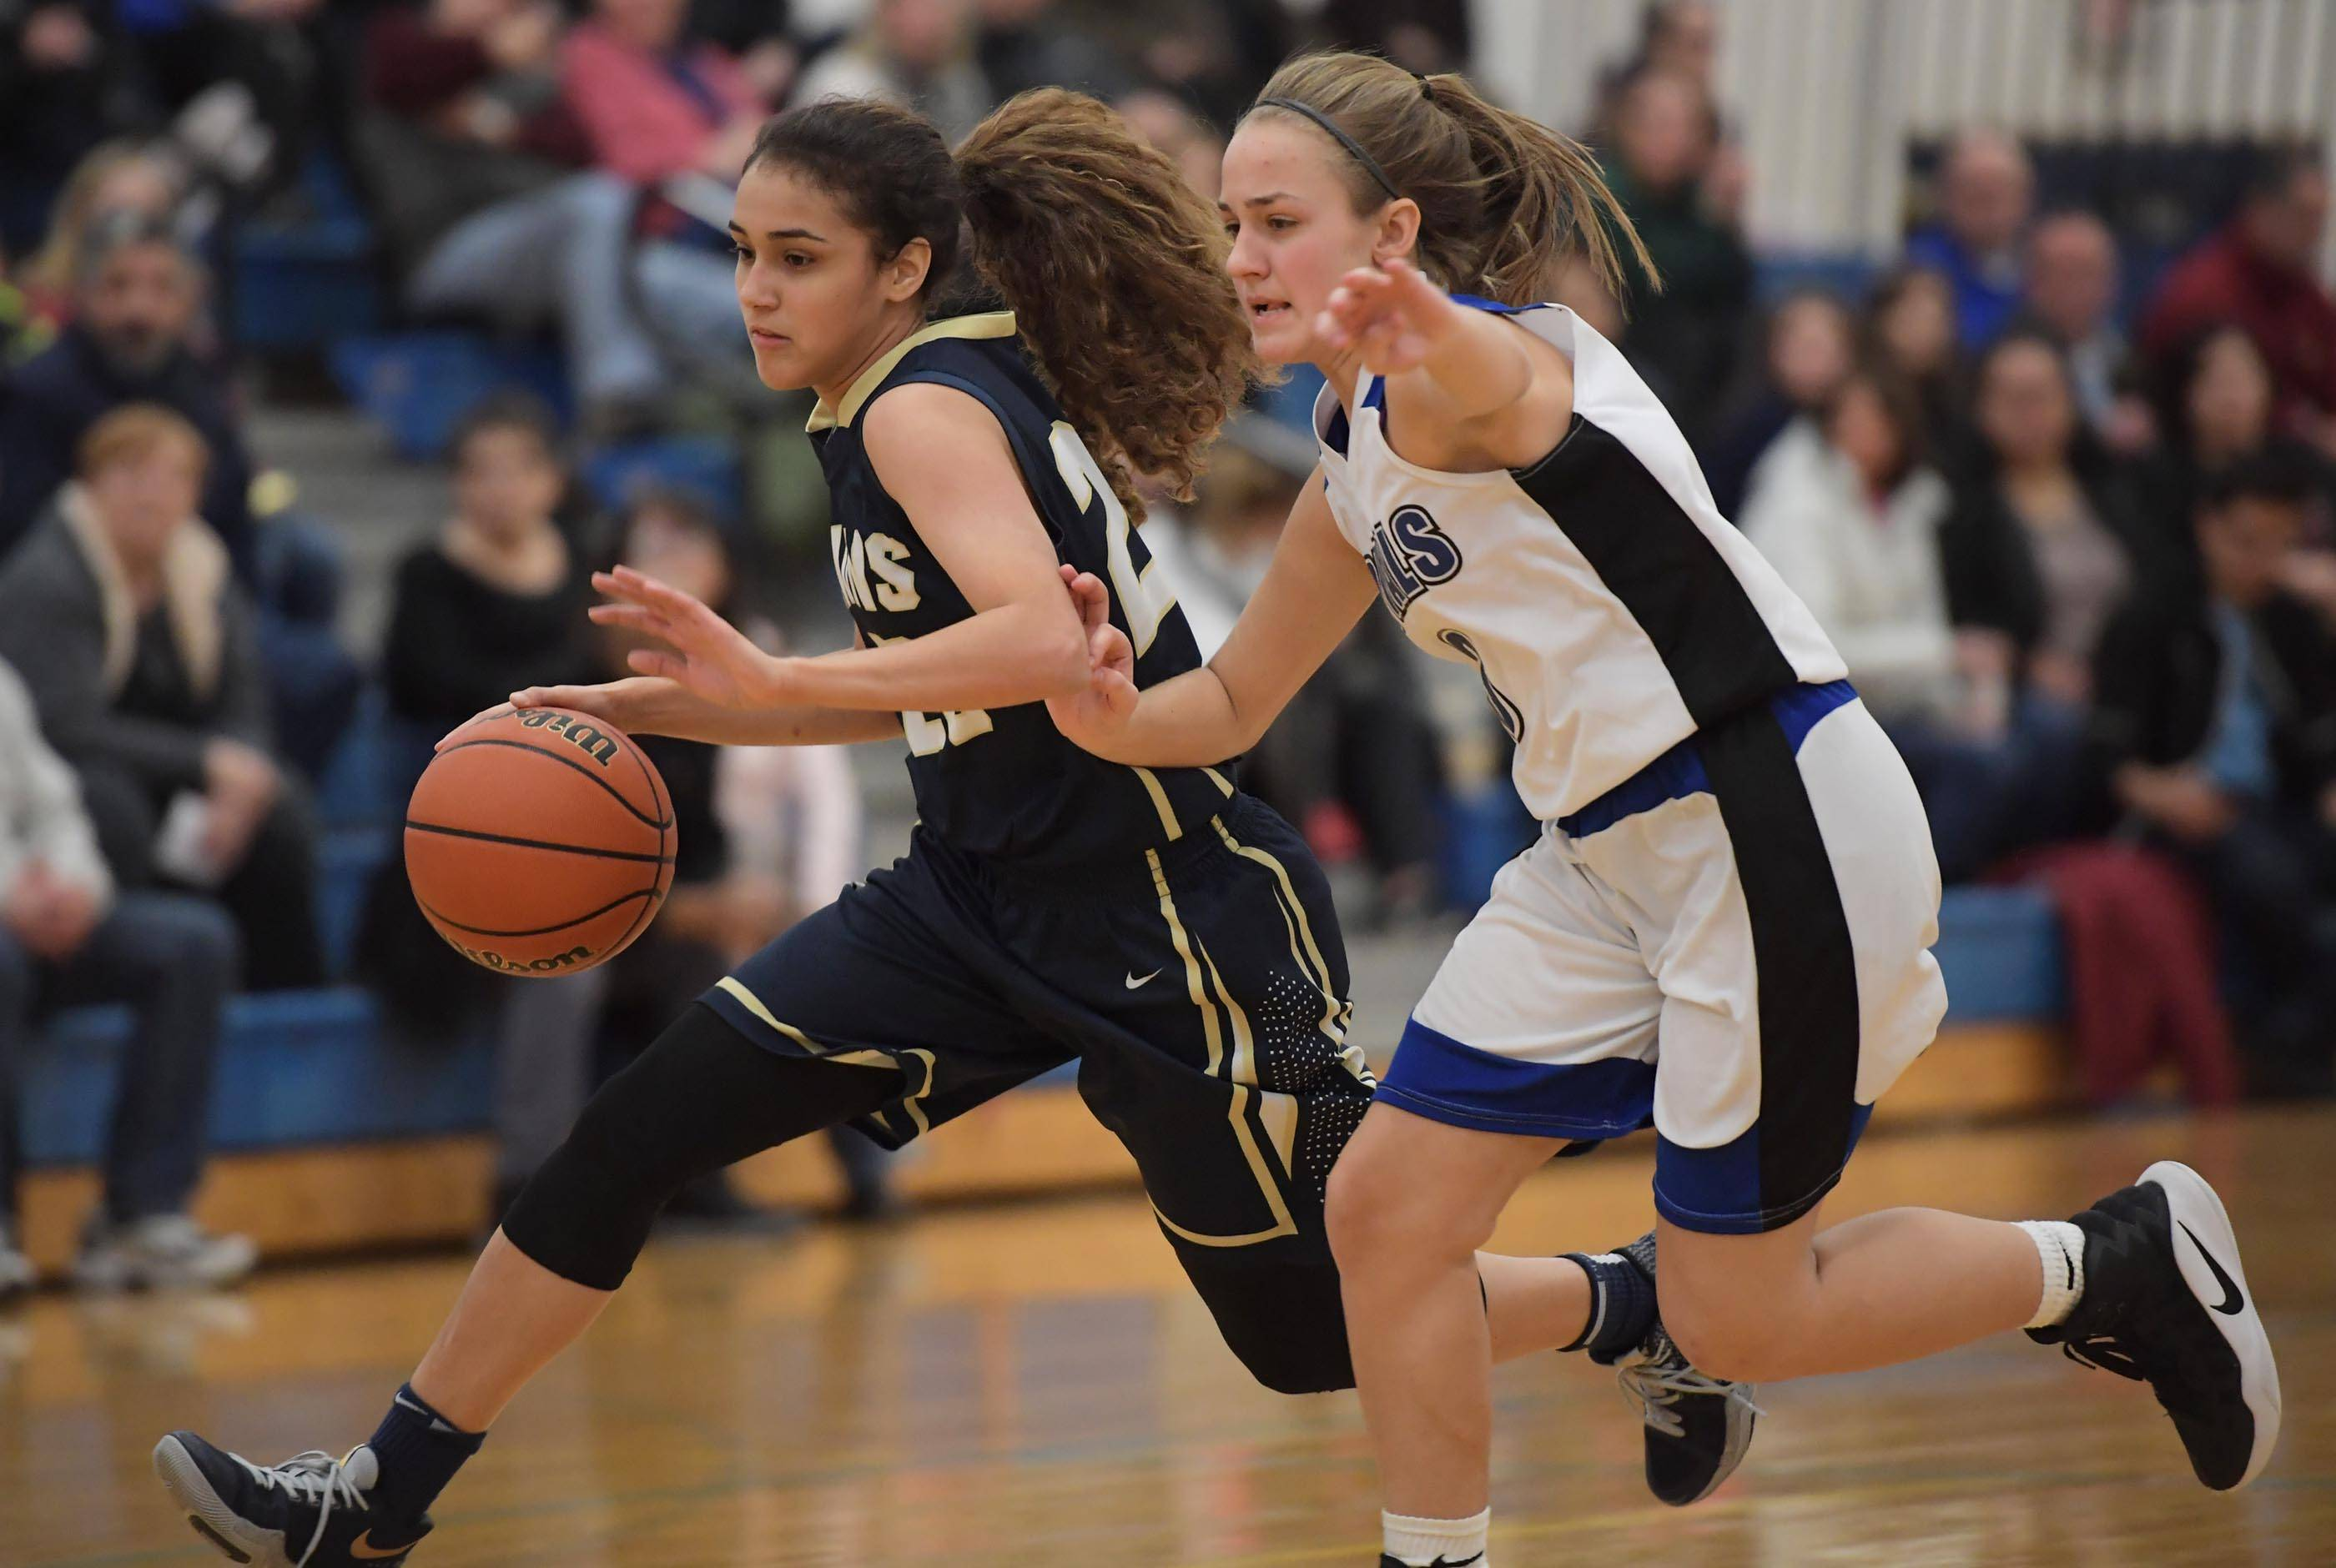 Harvest Christian's Alyssa Iverson runs past Rosary's Kristin Timko in a girls basketball game in Aurora Tuesday.